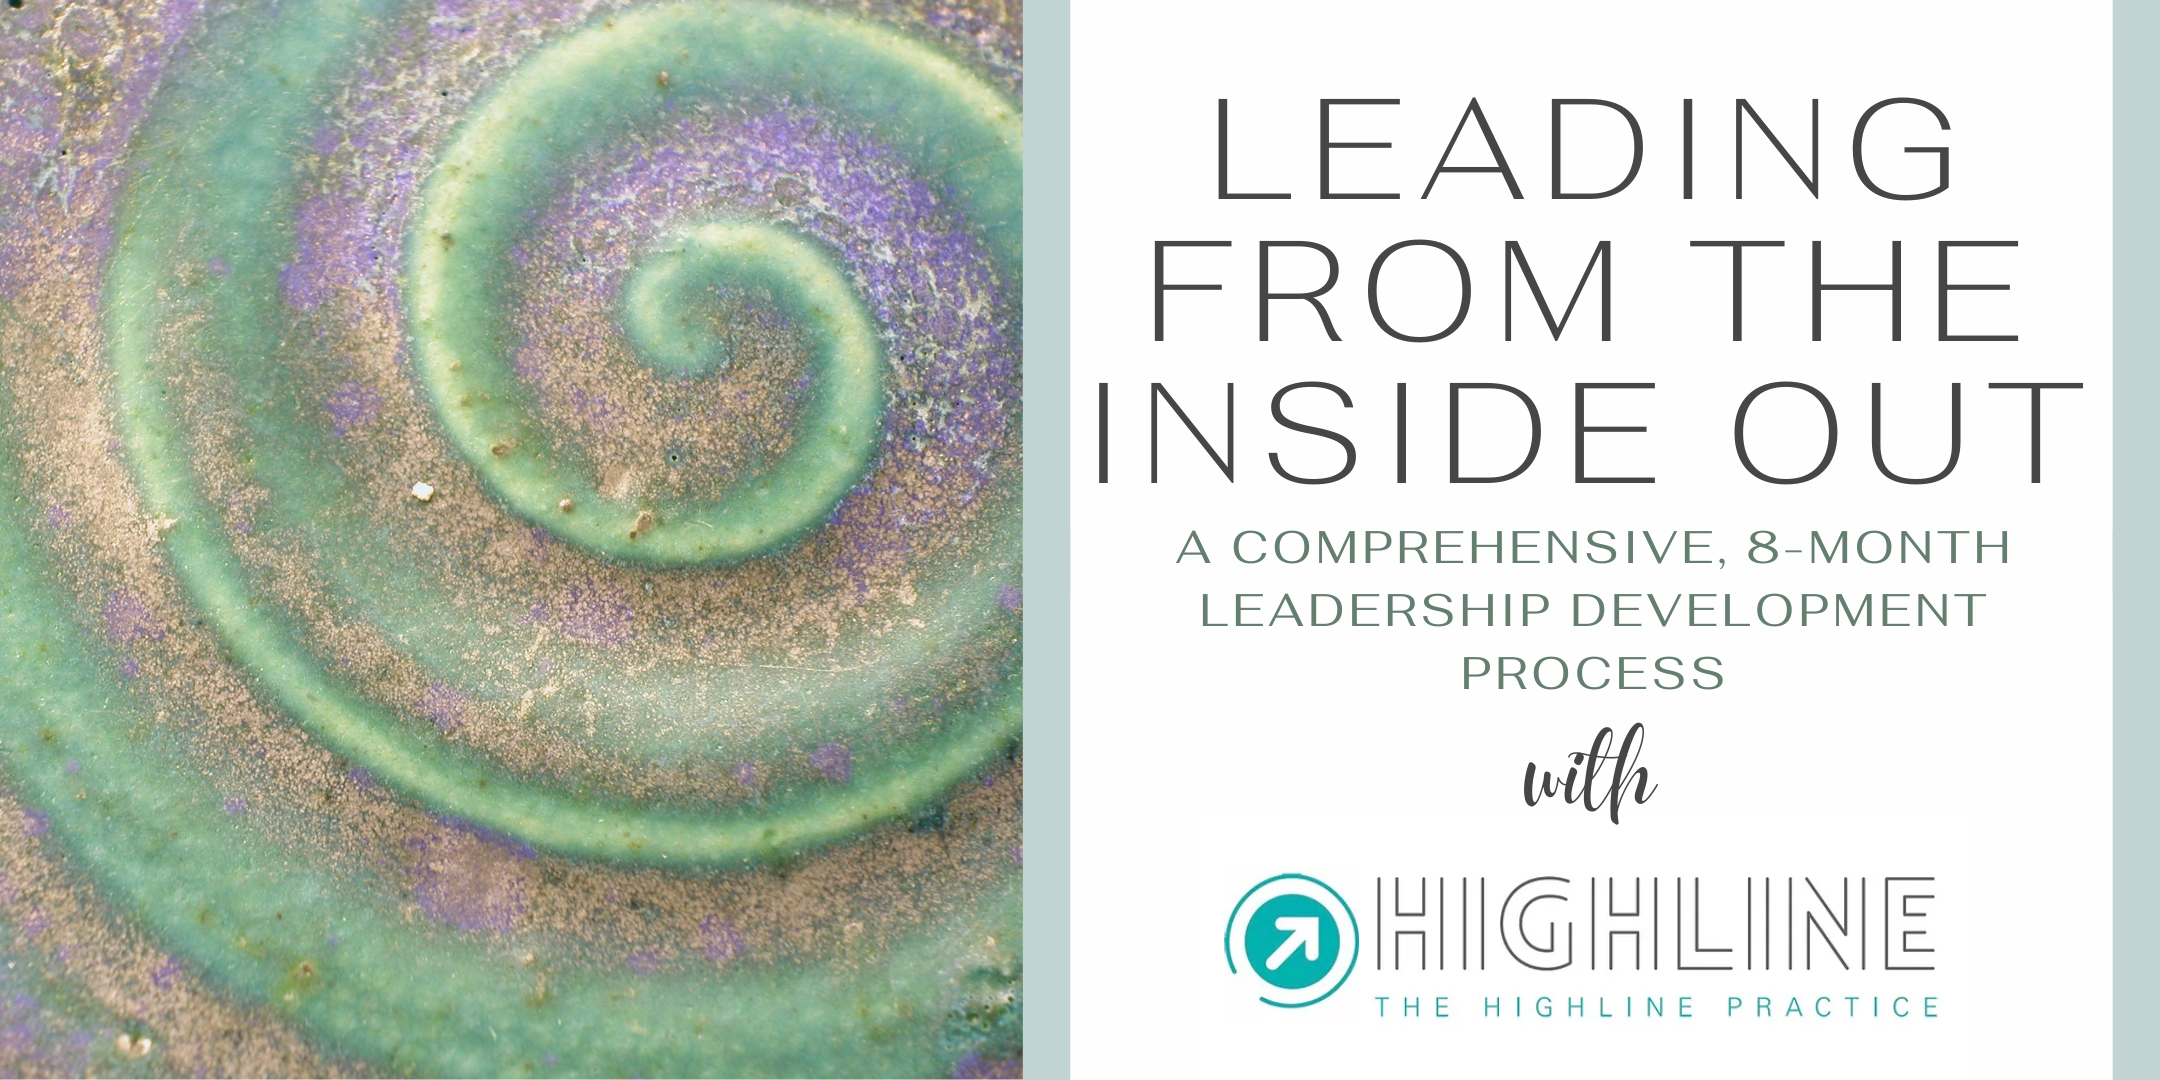 Leading from the Inside Out - A comprehensive, 8-month leadership development process with The Highline Practice